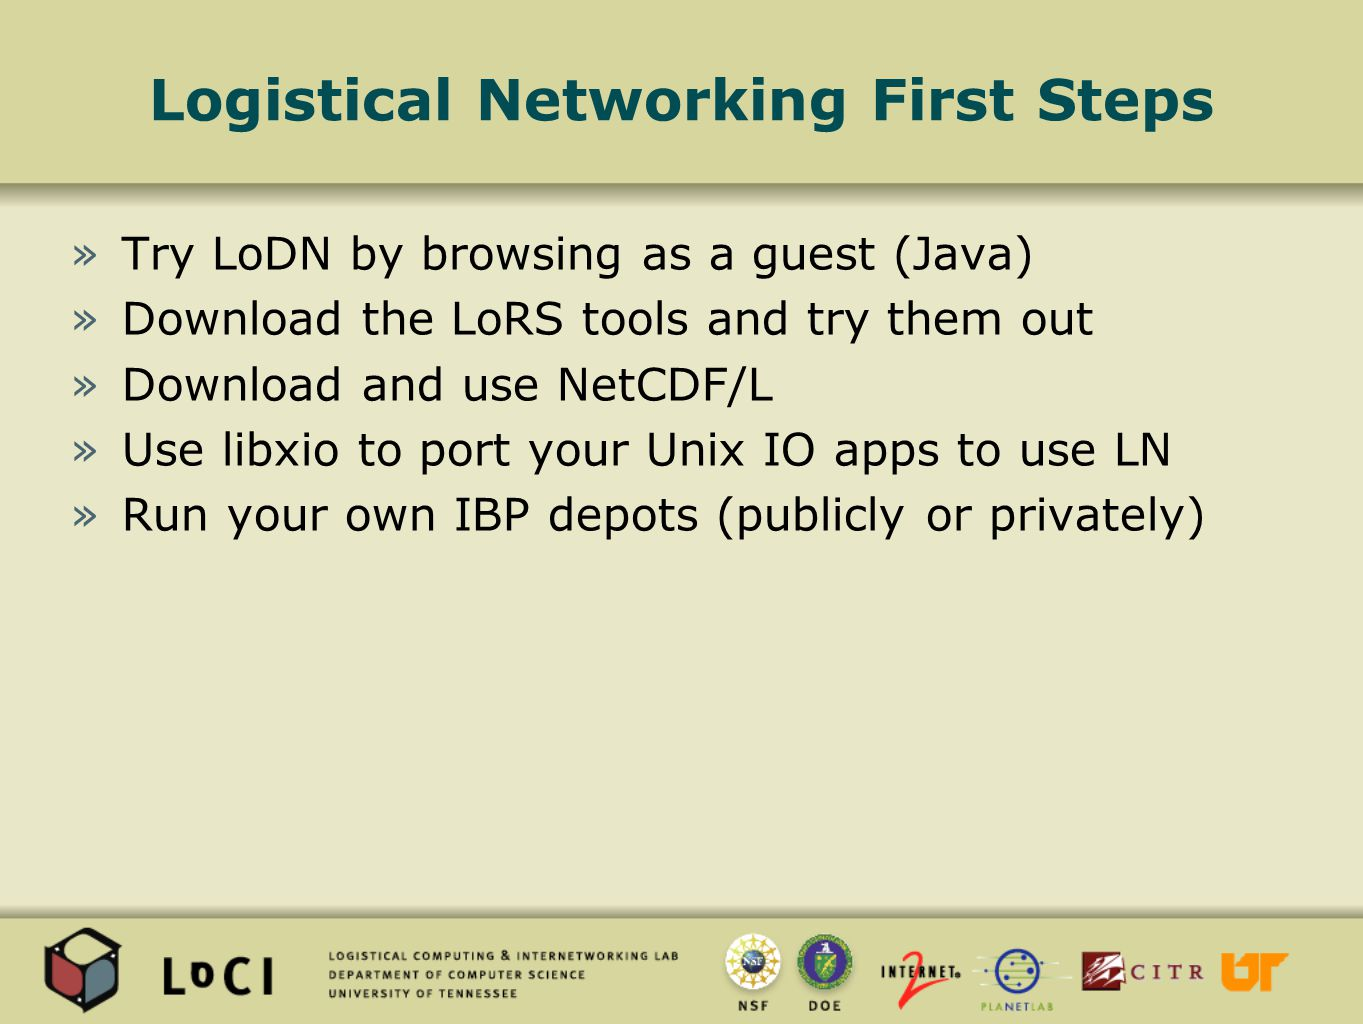 Logistical Networking First Steps »Try LoDN by browsing as a guest (Java) »Download the LoRS tools and try them out »Download and use NetCDF/L »Use libxio to port your Unix IO apps to use LN »Run your own IBP depots (publicly or privately)